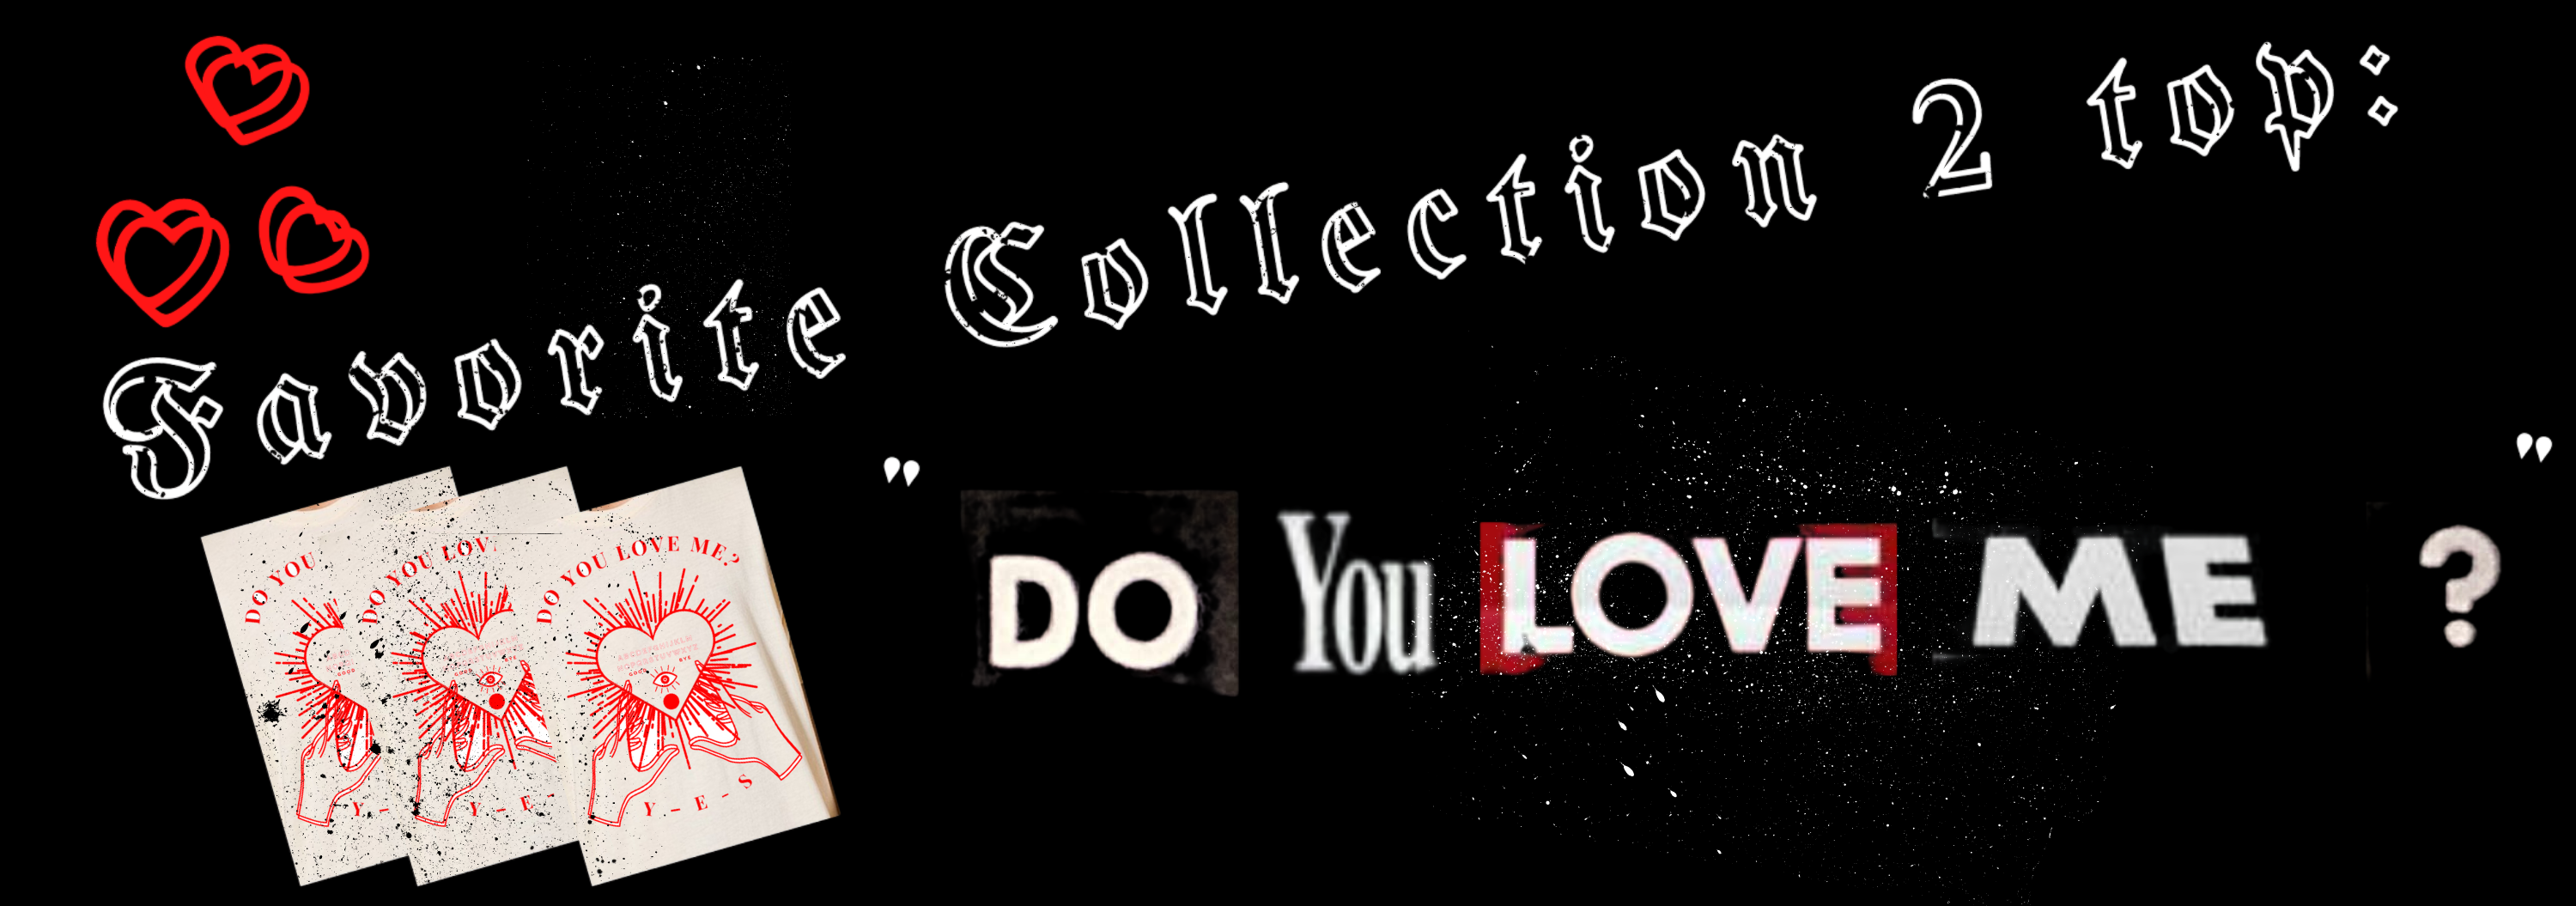 A black, white, and red graphic that says Favorite Collection 2 Top and Do You Love Me, featuring the graphic found on the Do You Love Me top.